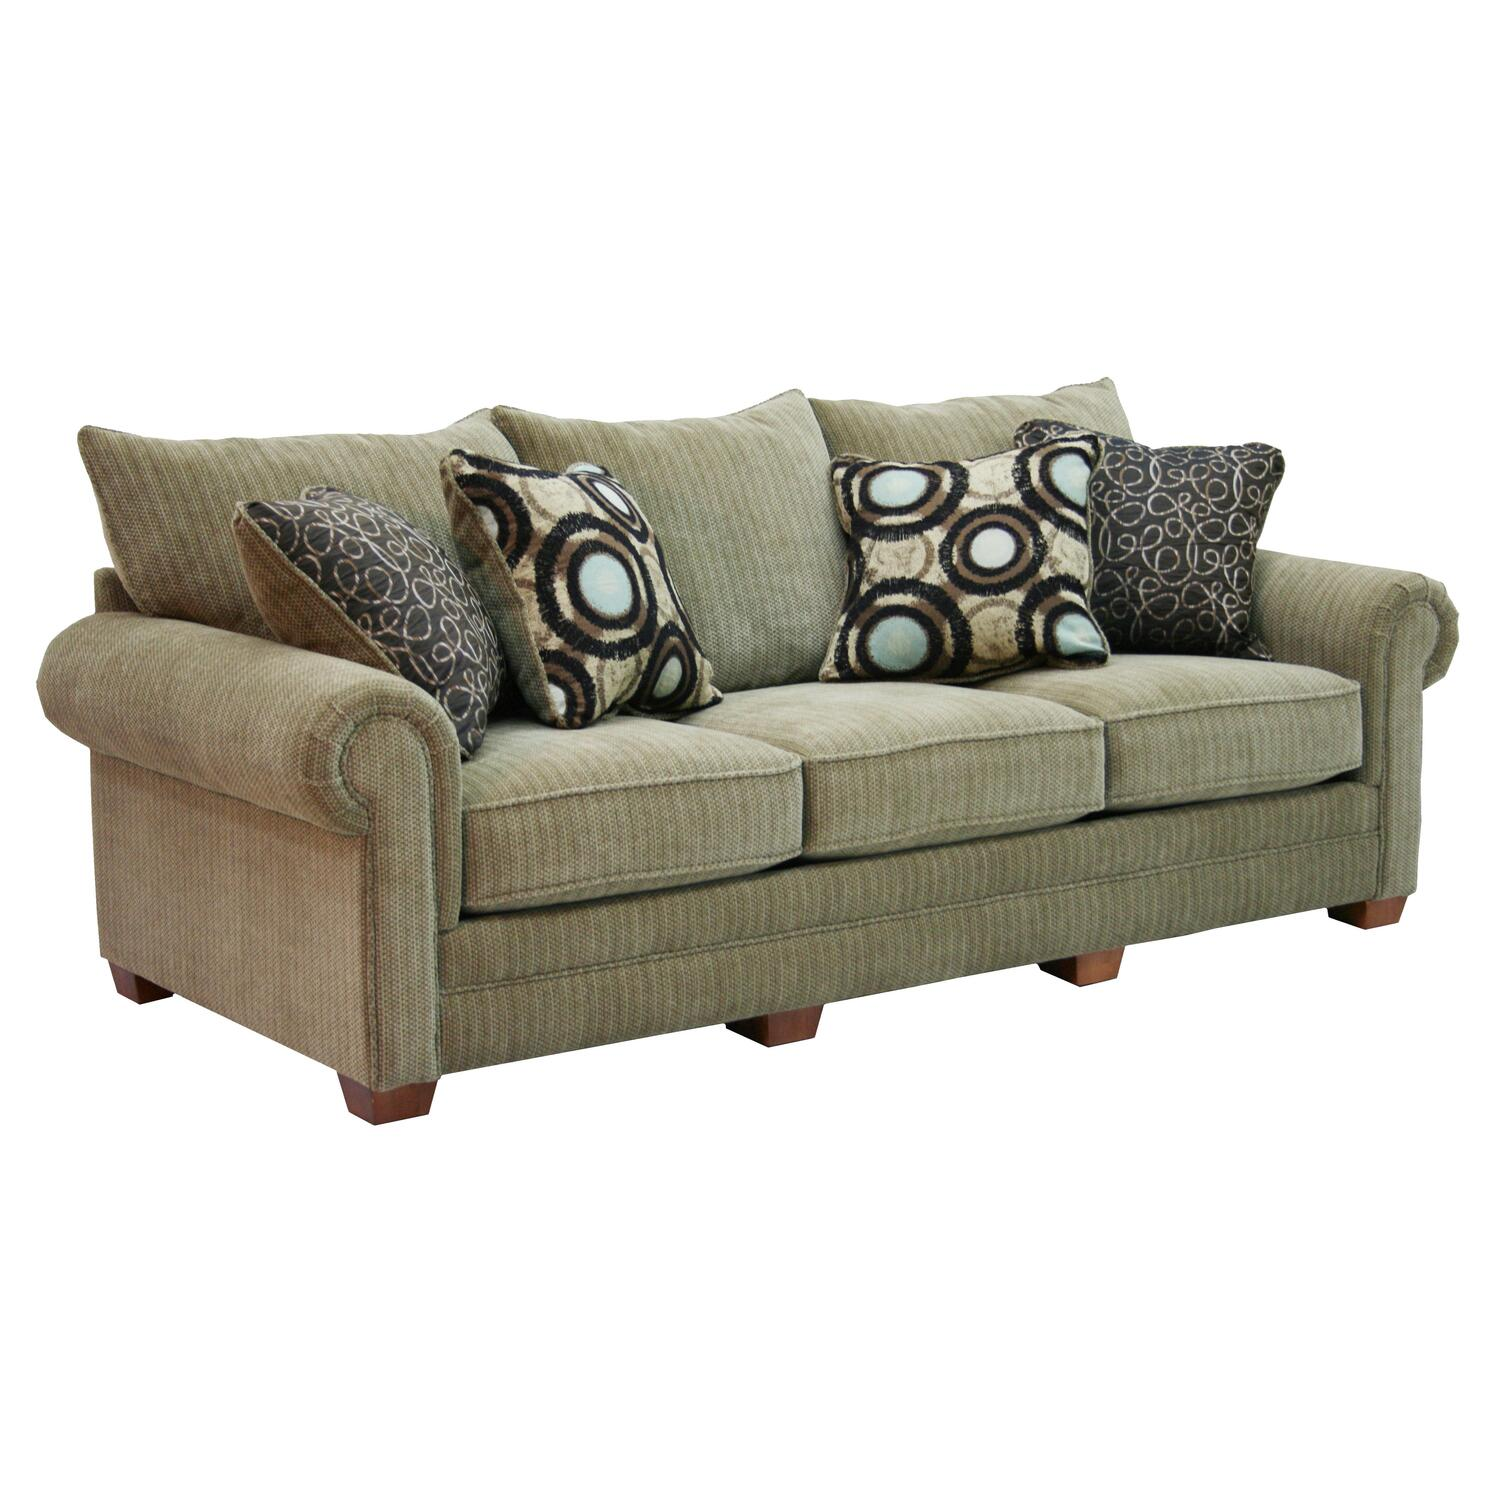 chenille sofa fabric care slipcovered sectional jackson furniture anniston by oj commerce 4342 03